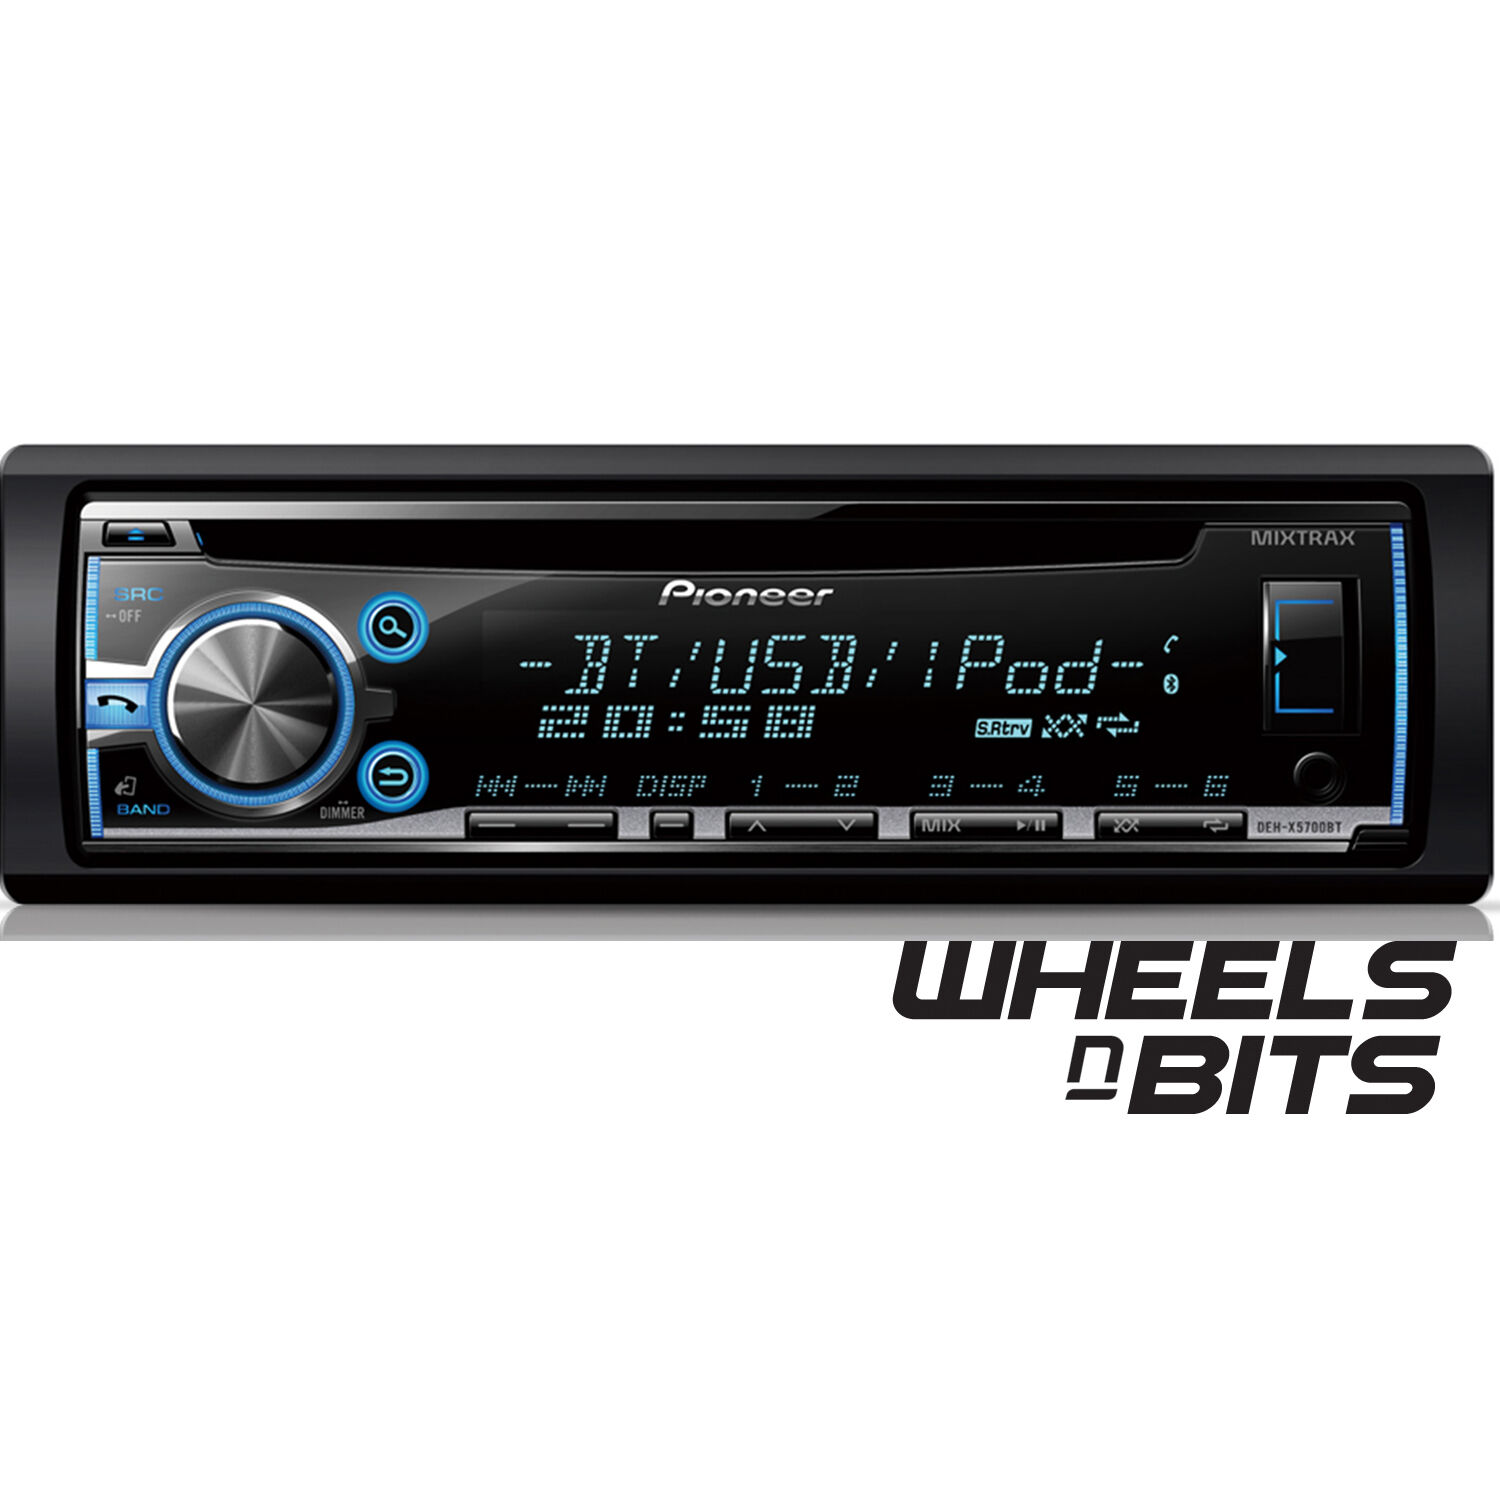 Pioneer Ipod Car Pioneer Deh-x5700bt Car Stereo